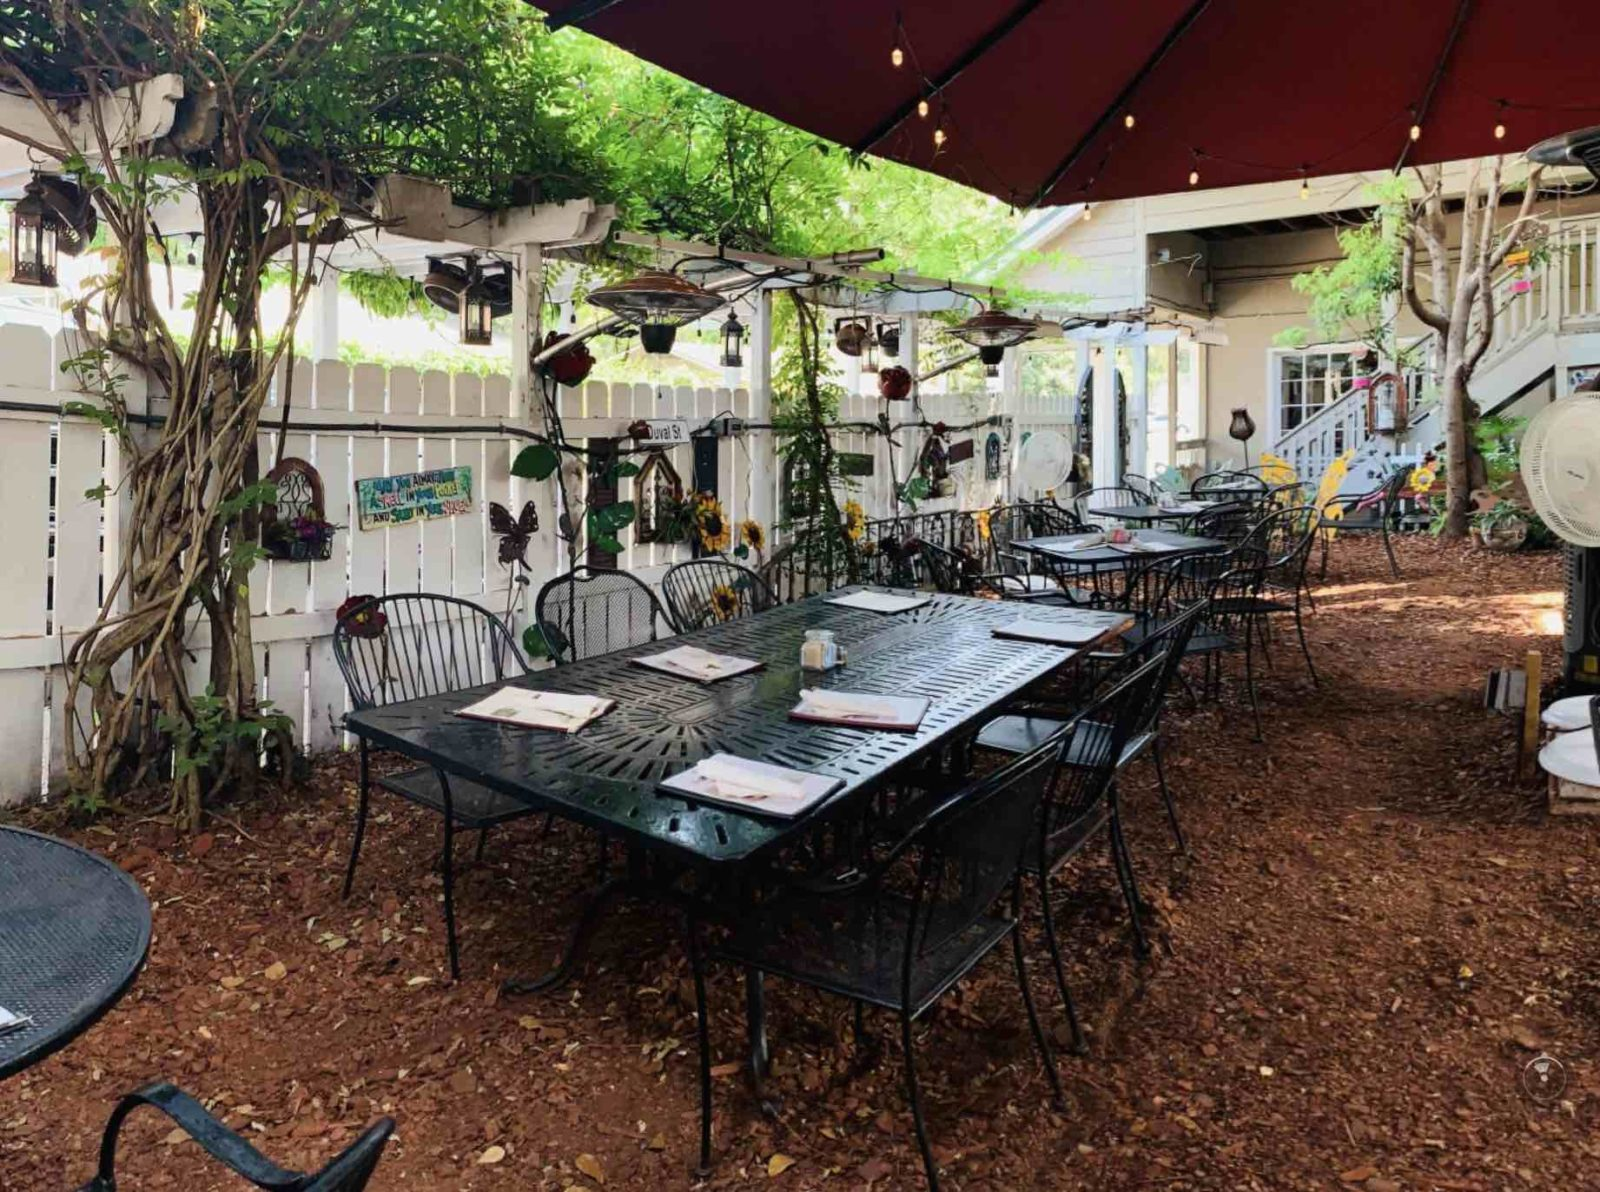 Lowcountry Backyard's outdoor seating area